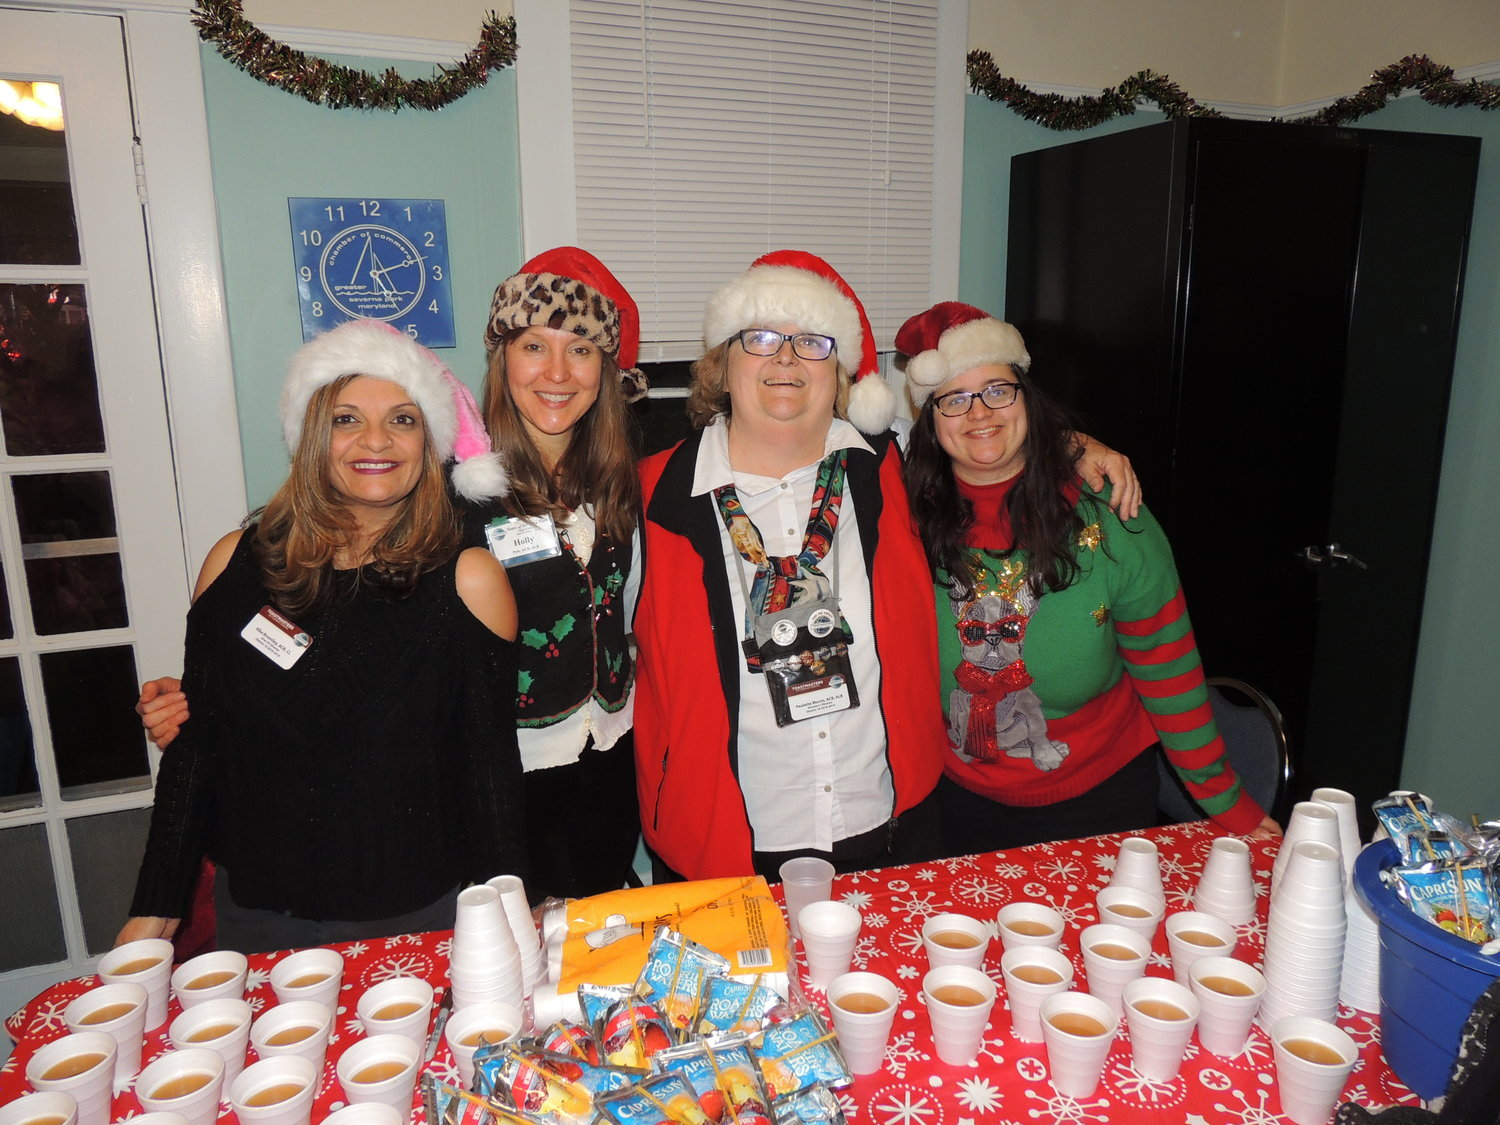 The Toast Masters of Severna Park worked the chamber's community meeting room and kept event attendees refreshed with hot cider, cocoa, cookies and other goodies.